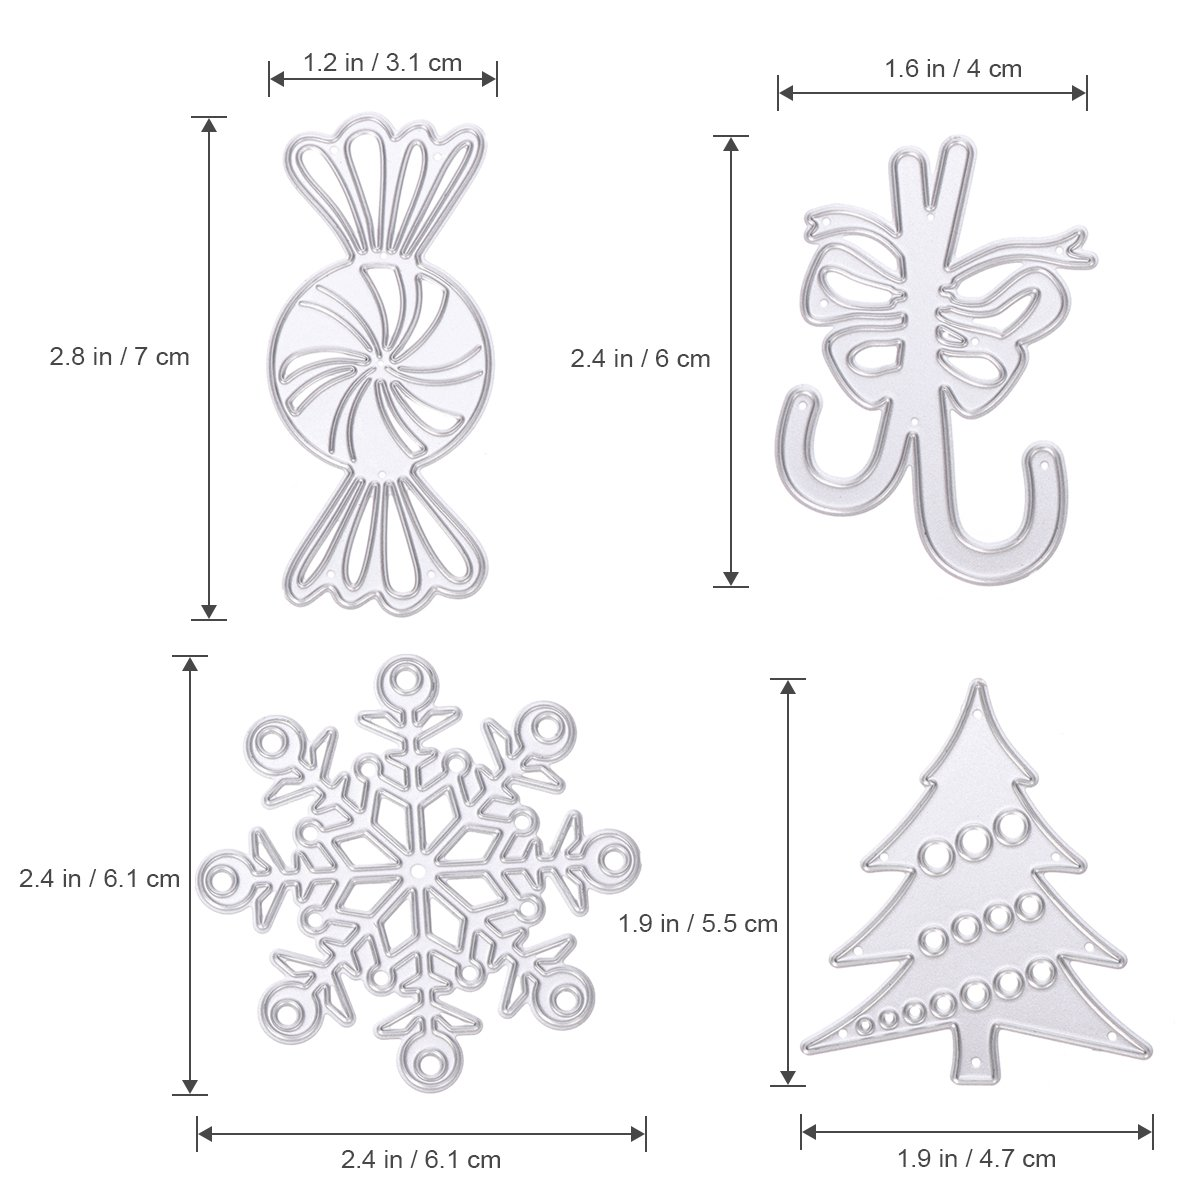 Ultnice Metal Stencils Template Christmas Snowflake Tree Kit Cutting